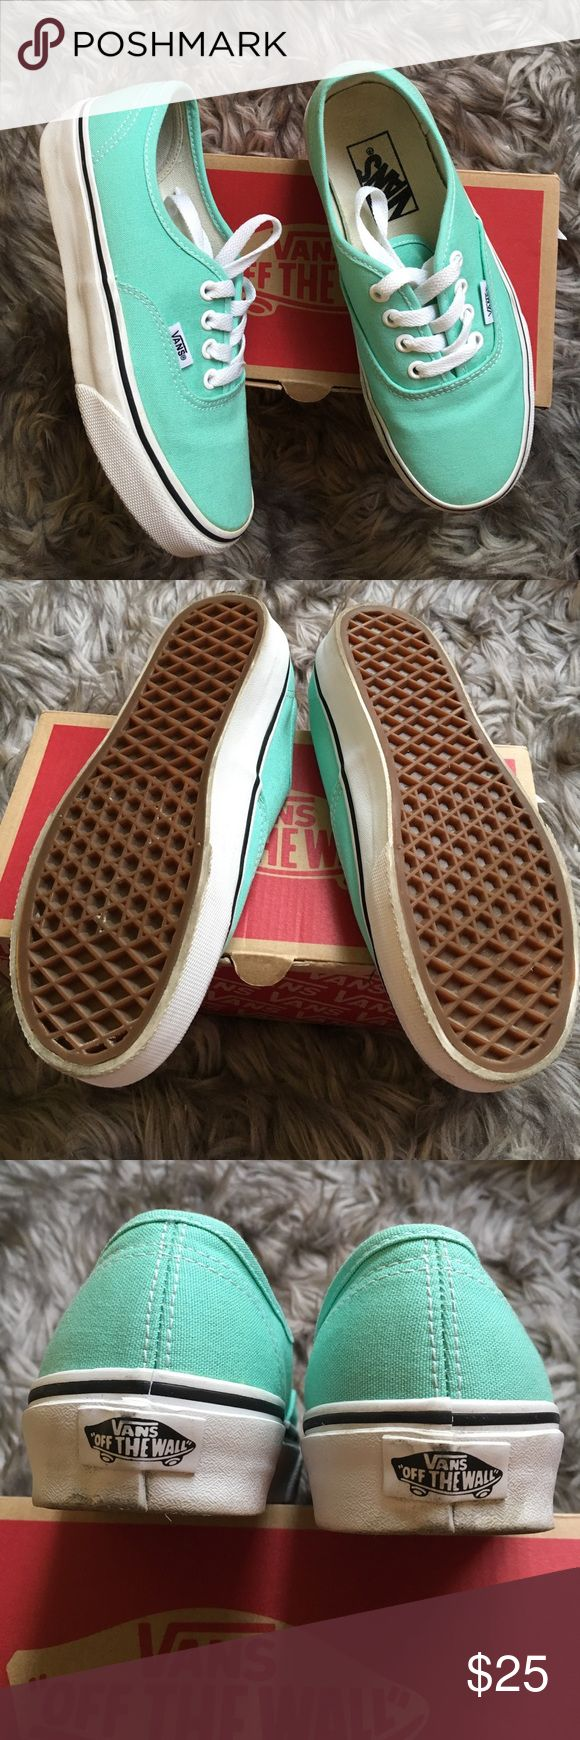 Mint Vans Shoes Worn once literally. Comes with Box. Vans Shoes Sneakers